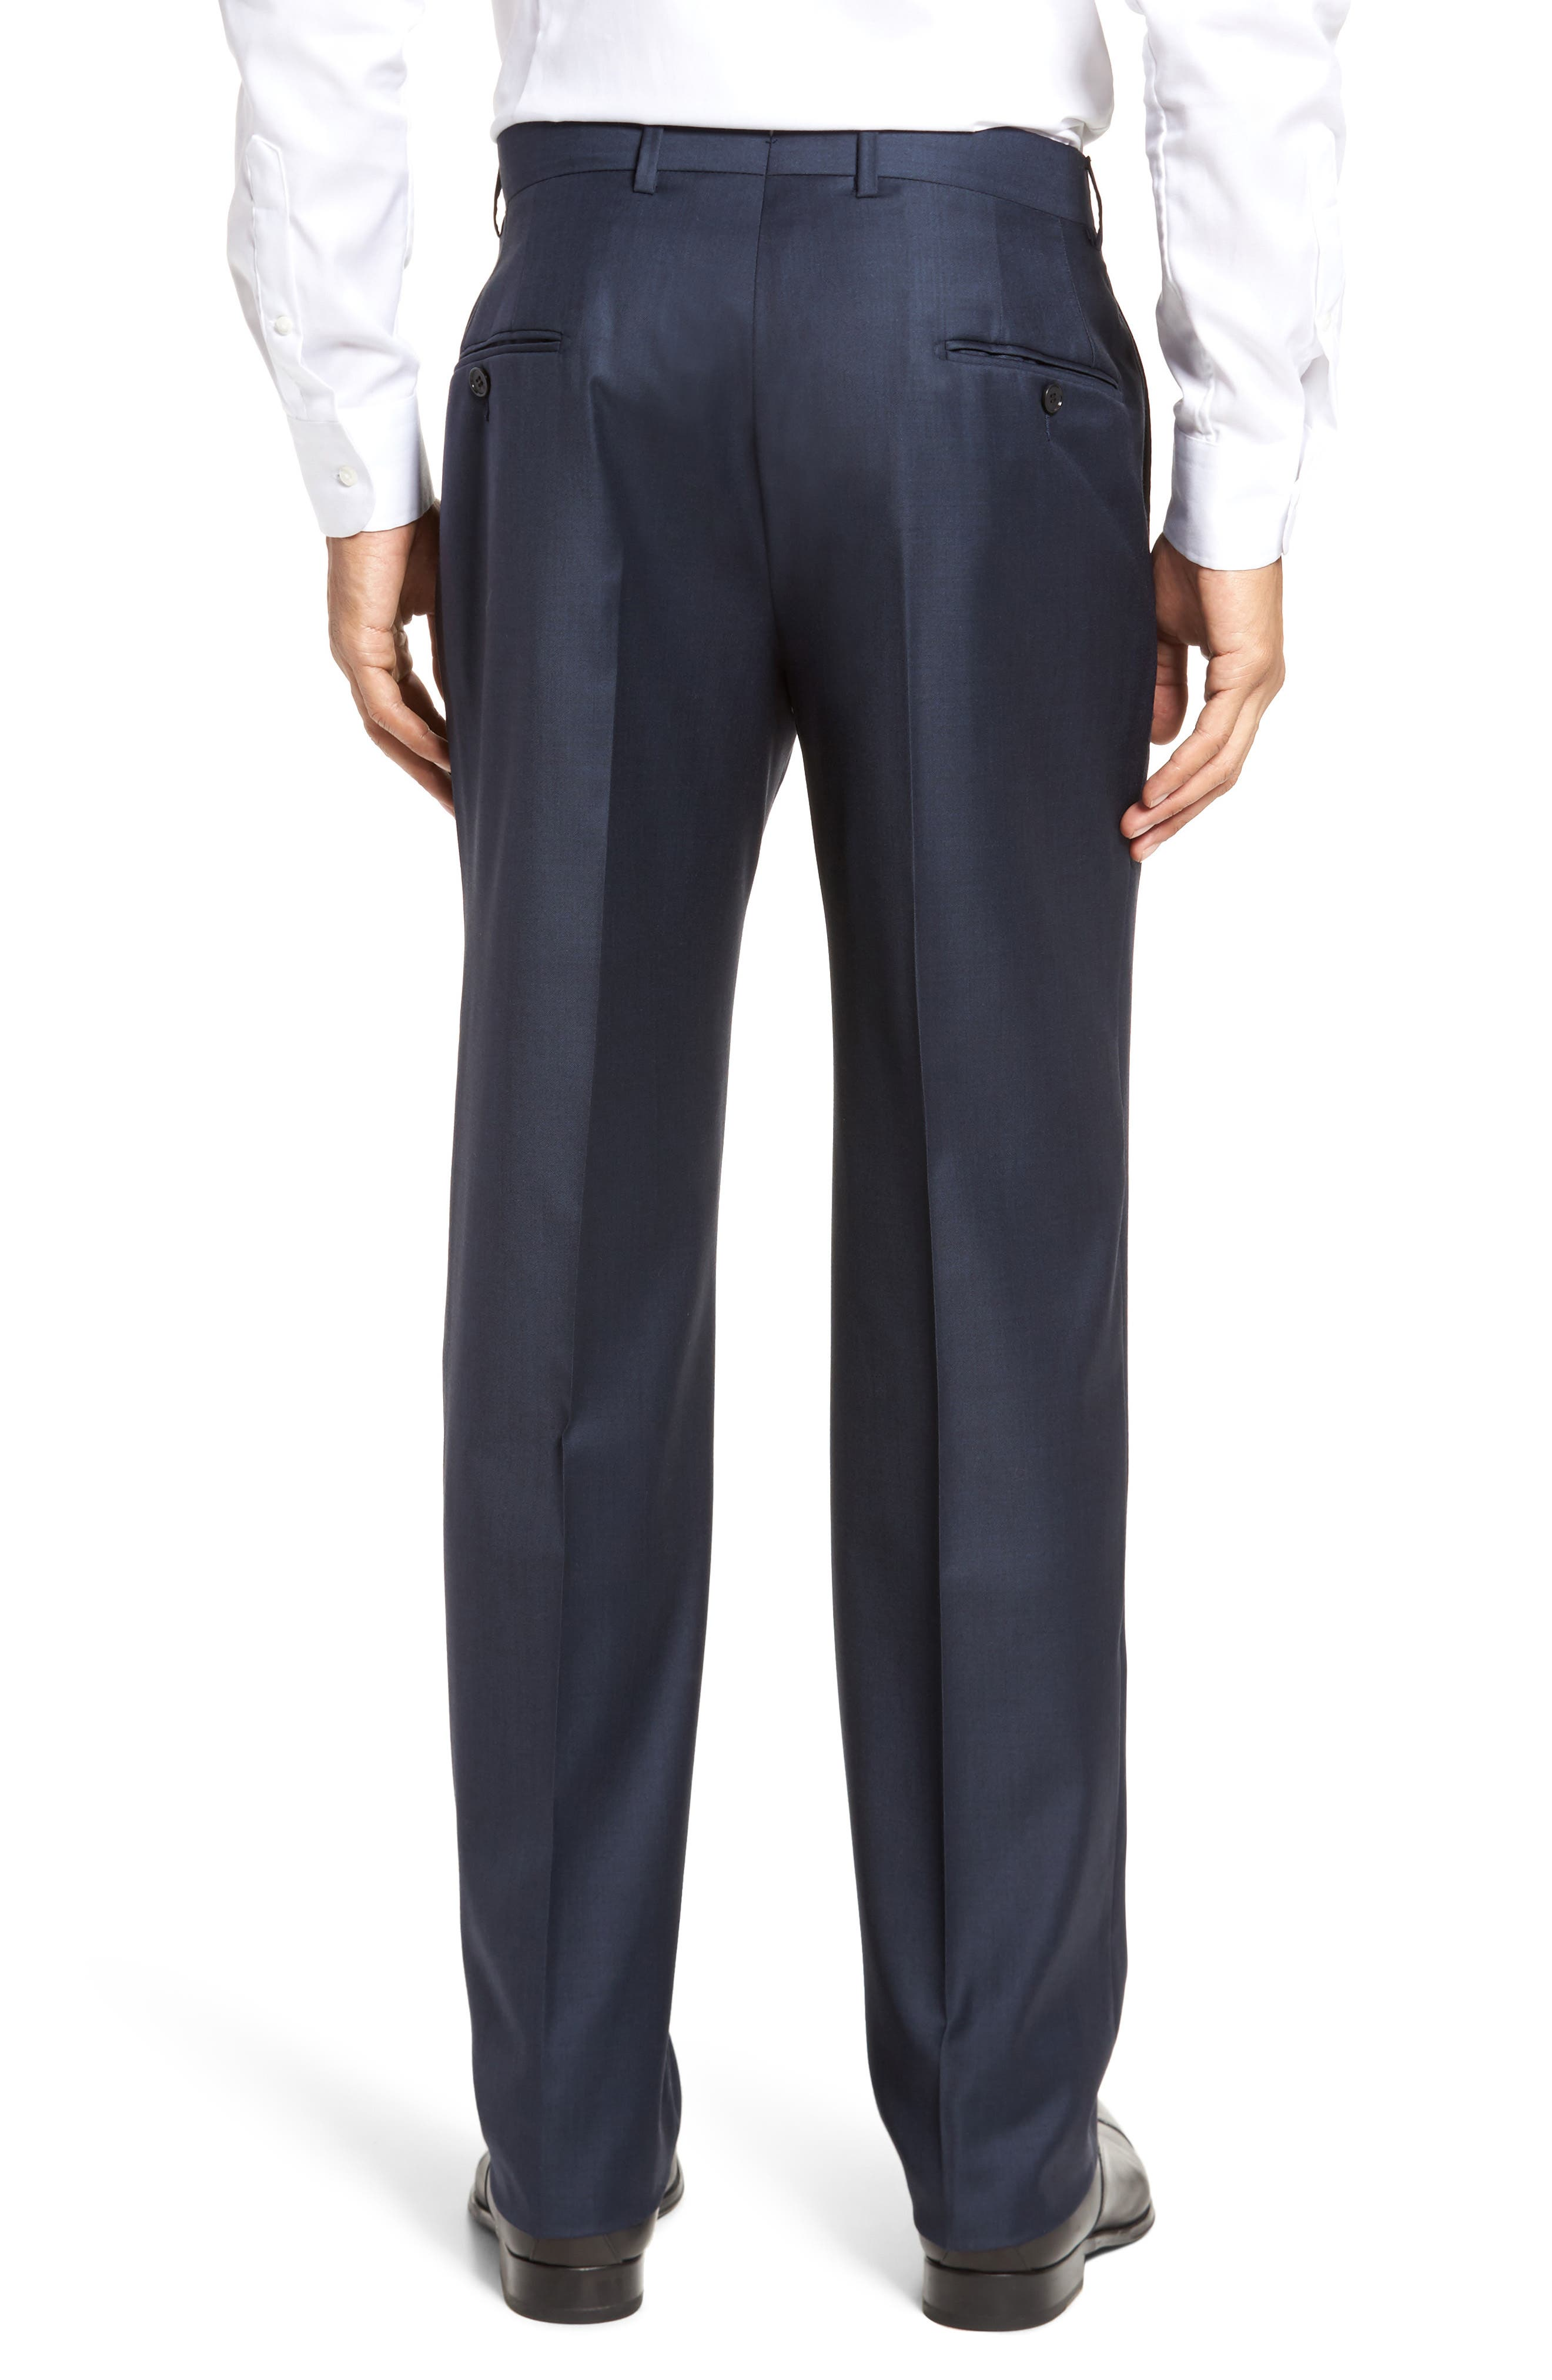 Classic B Fit Flat Front Solid Wool Trousers,                             Alternate thumbnail 2, color,                             Navy Sharkskin